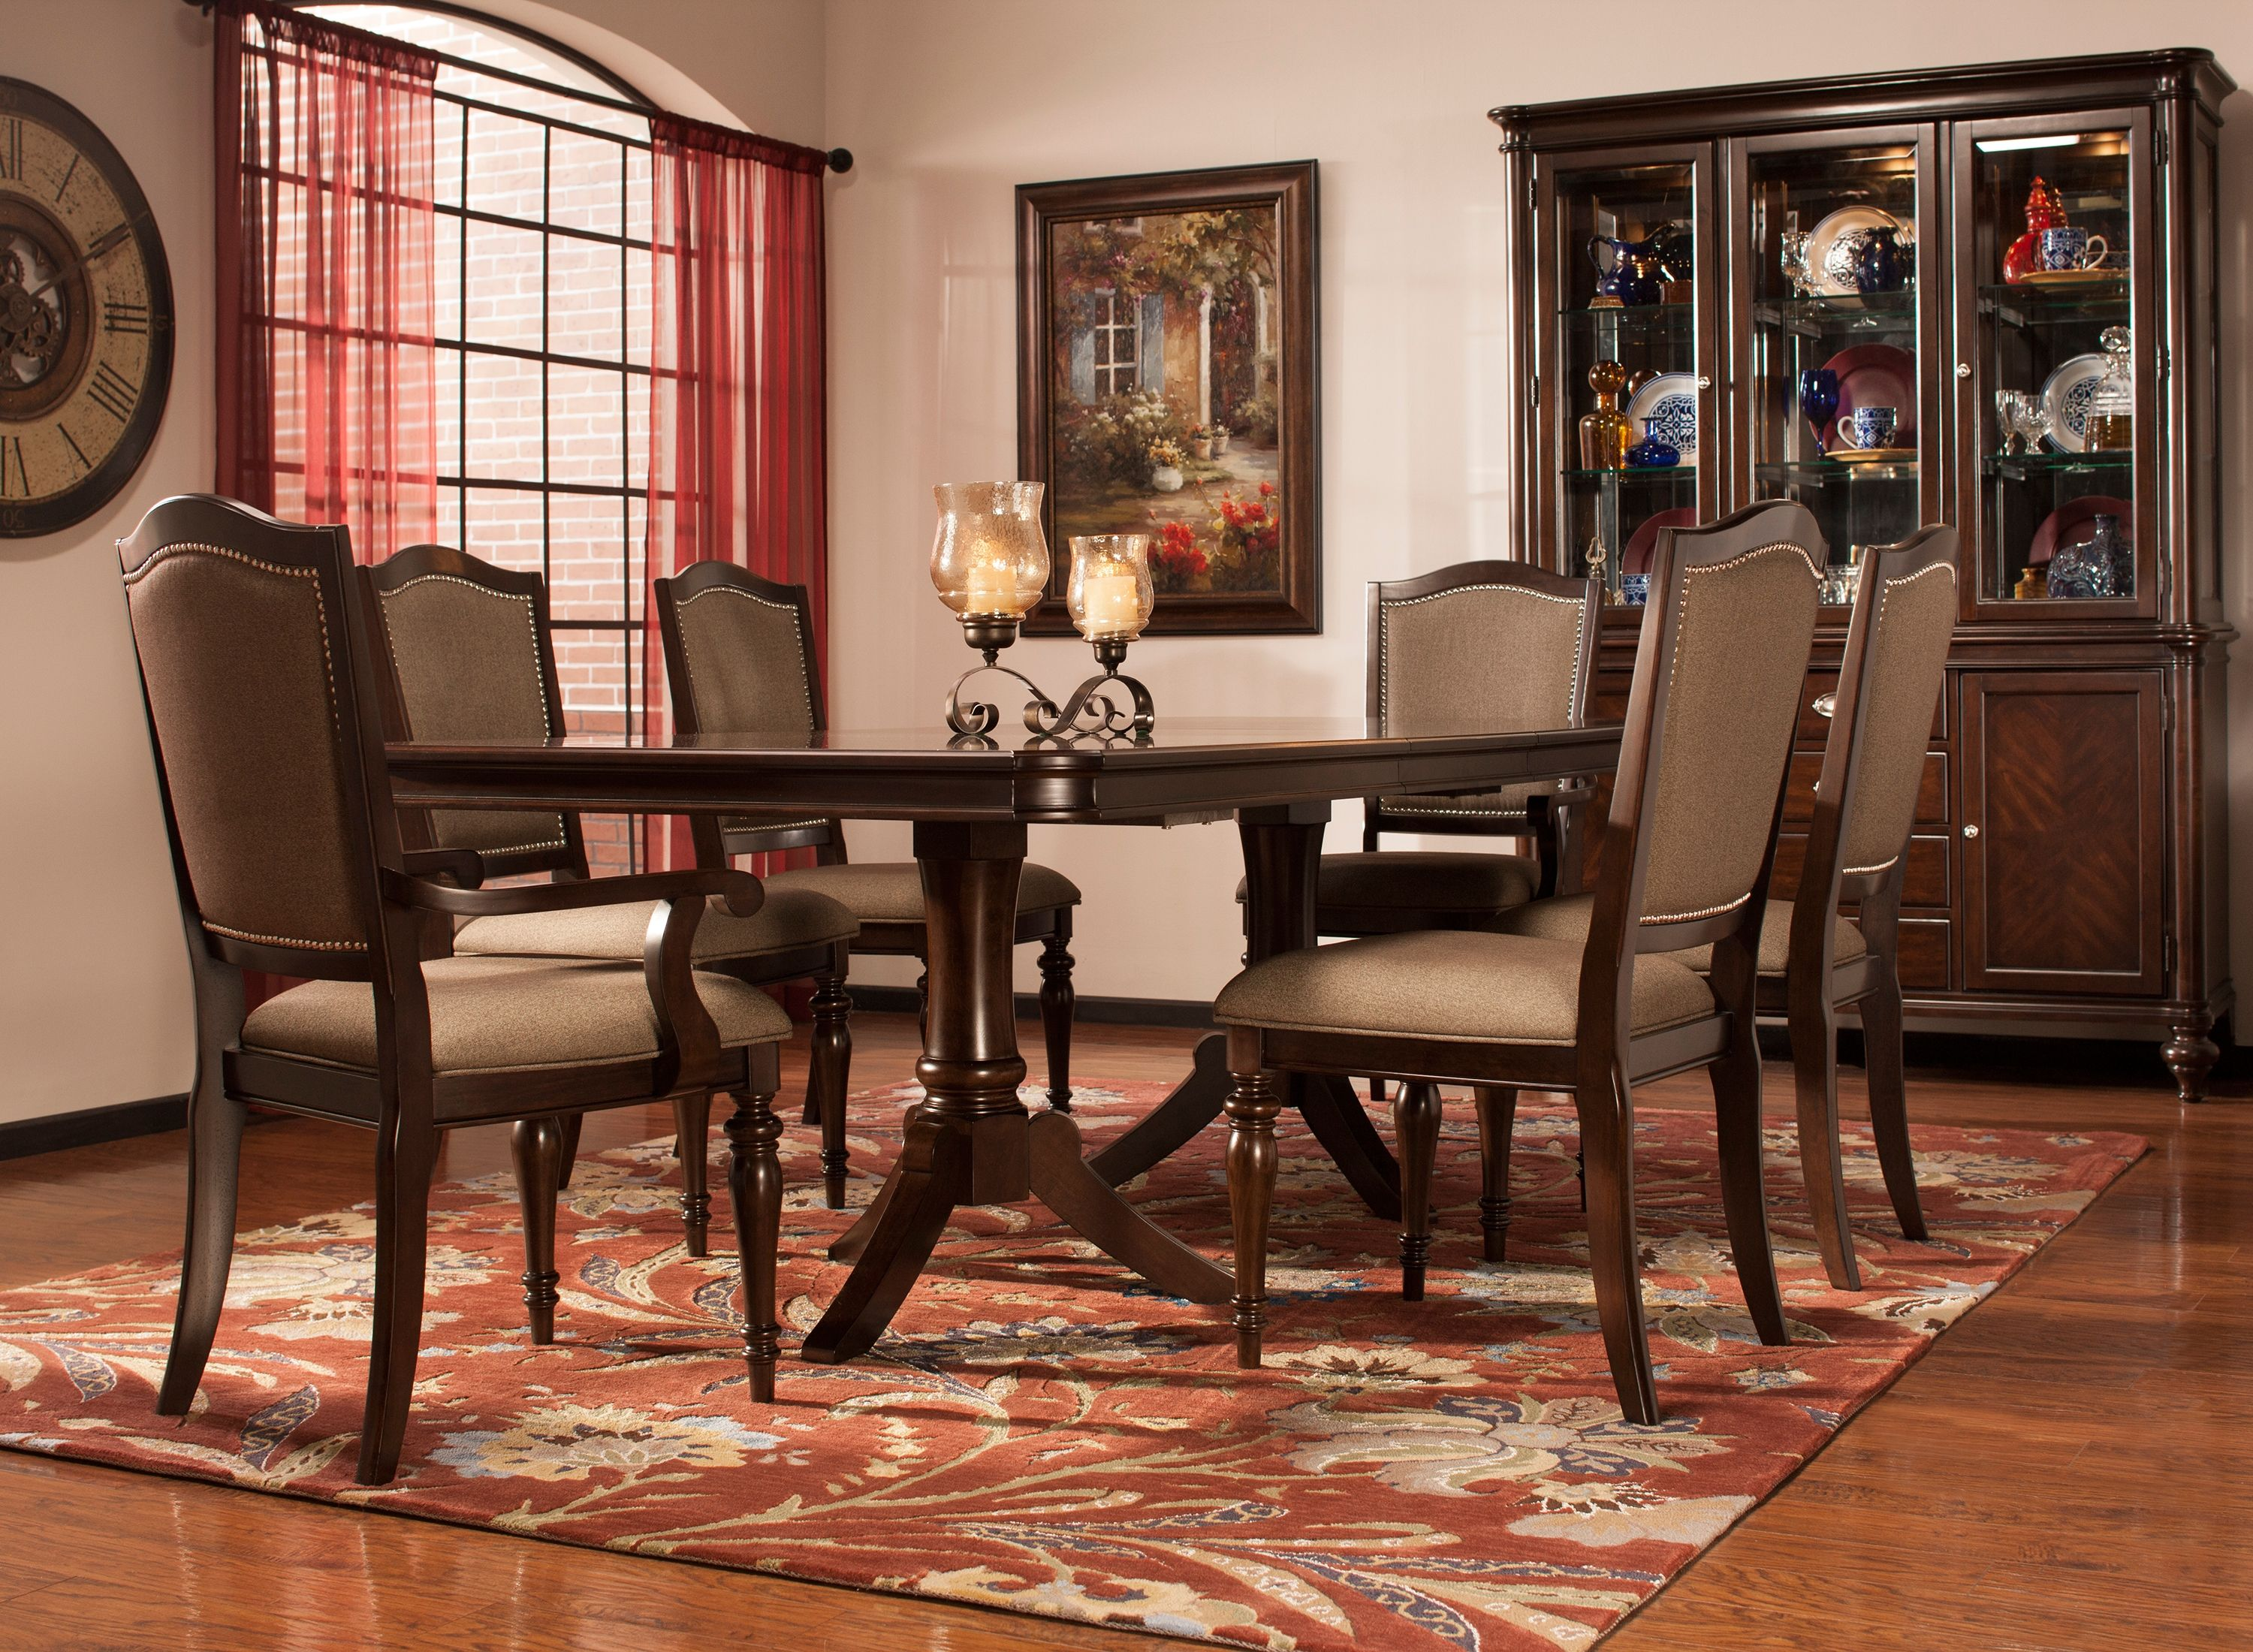 refined yet relaxing the bay city 7 piece dining set delivers elegance that s fit for a formal gathering